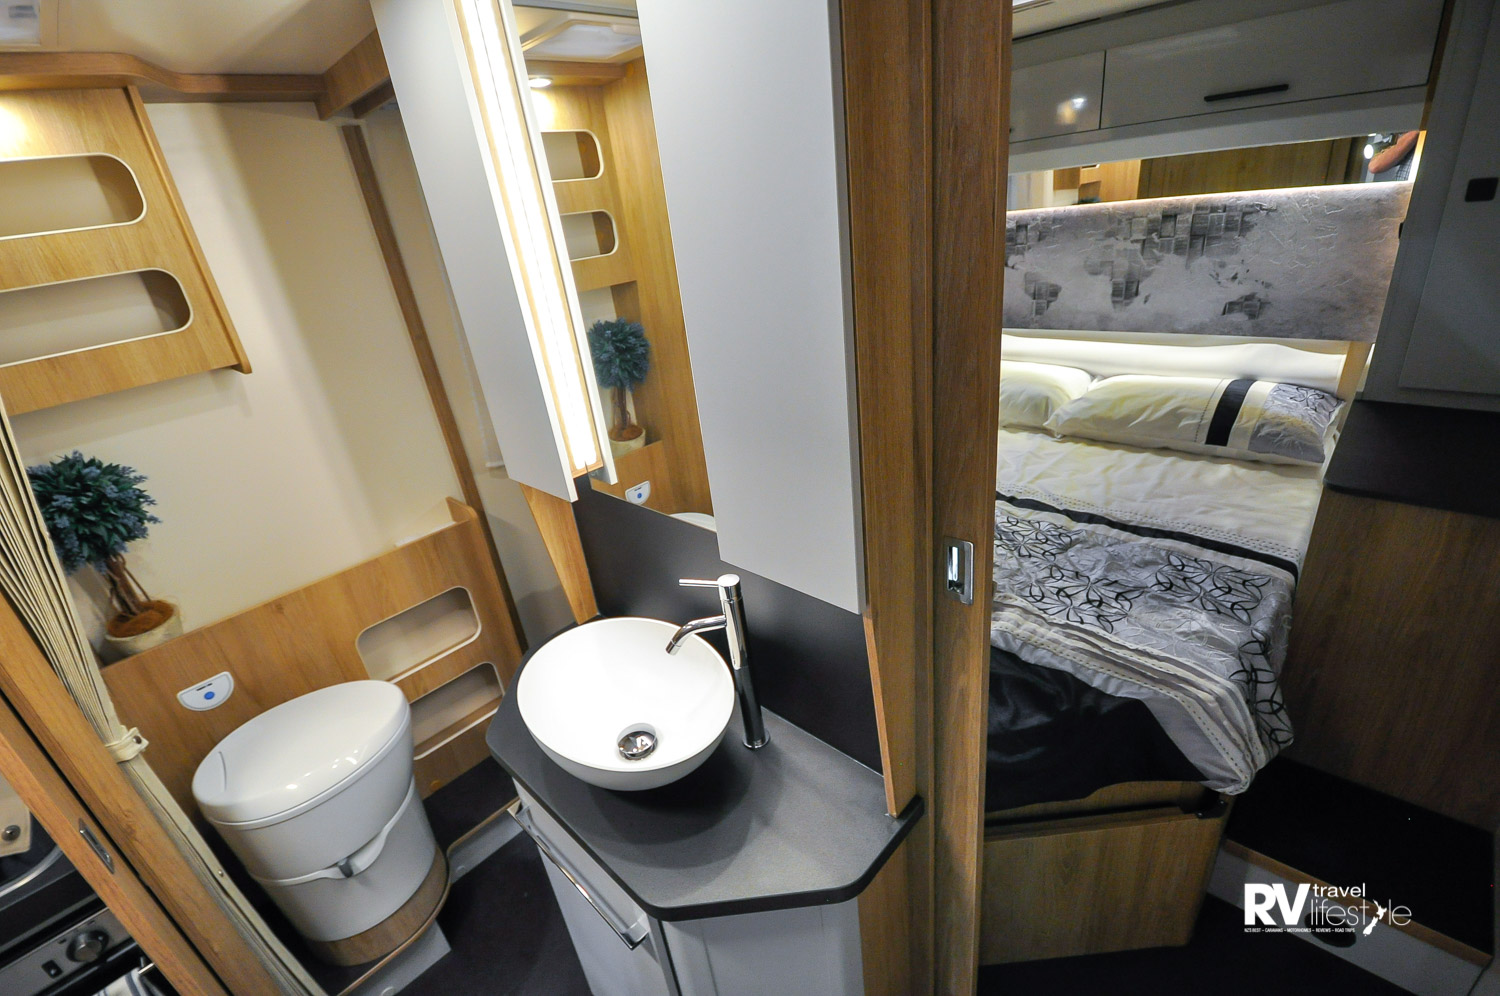 The en-suite bathroom with electric-flush swivel toilet, lots of storage spaces available, well lit, and mirrors add to the spacious feel